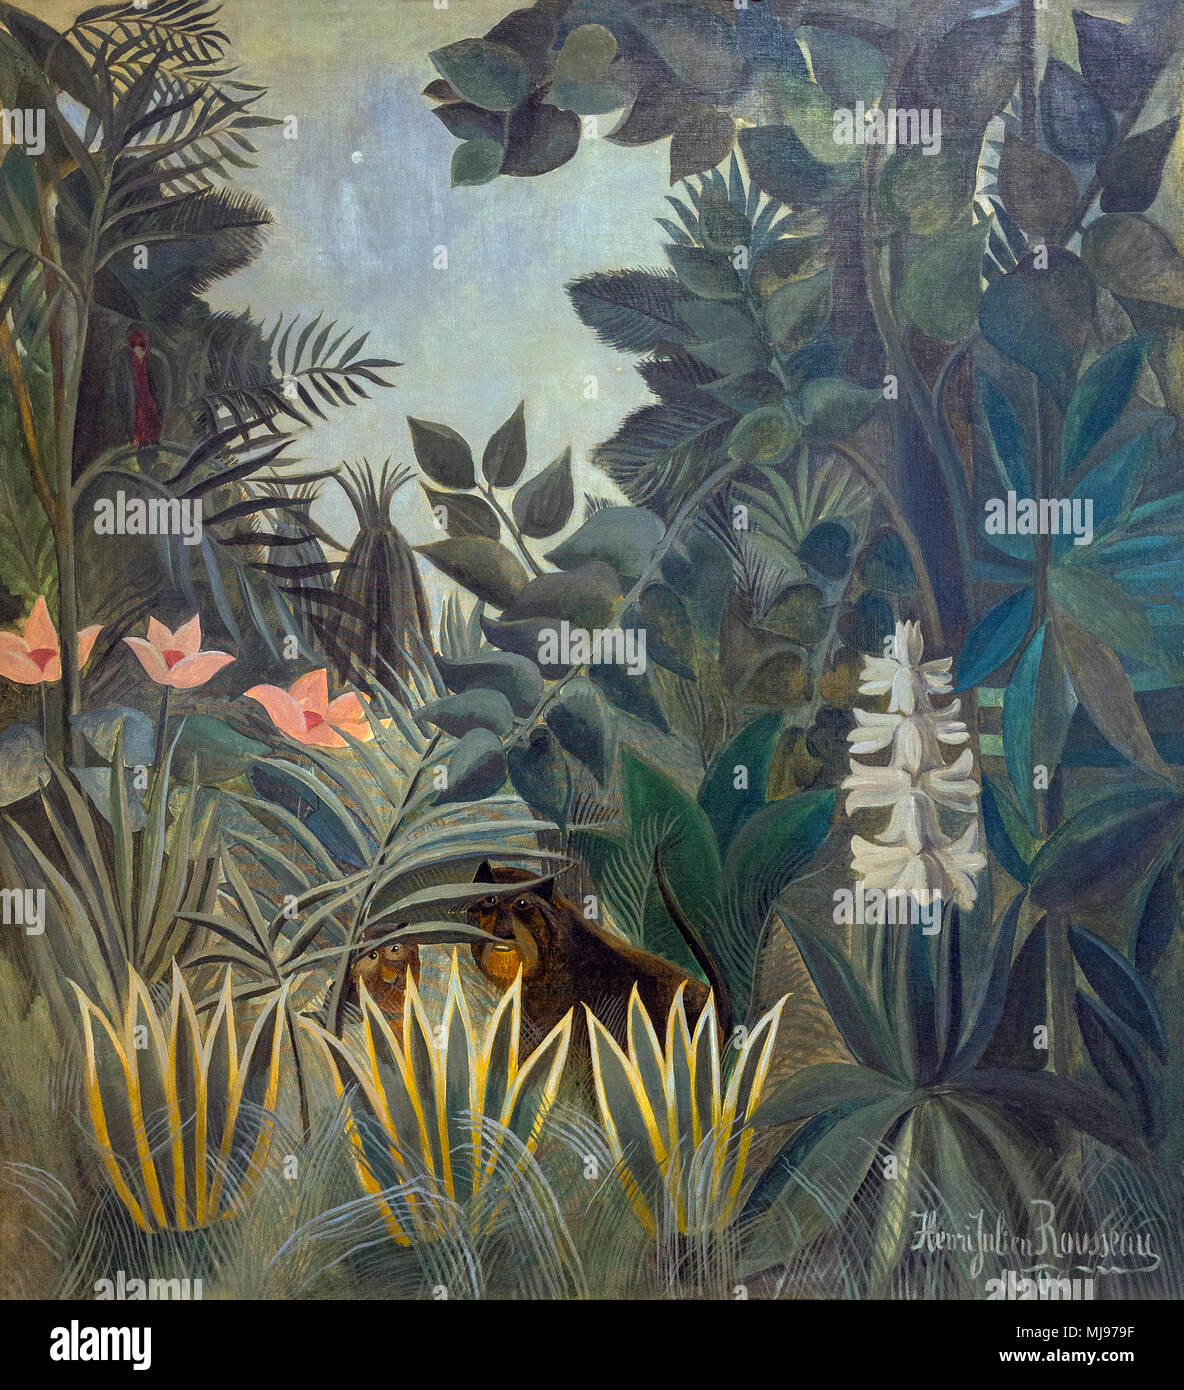 La Jungle équatoriale, Henri Rousseau, 1909, National Gallery of Art, Washington DC, USA, Amérique du Nord Photo Stock